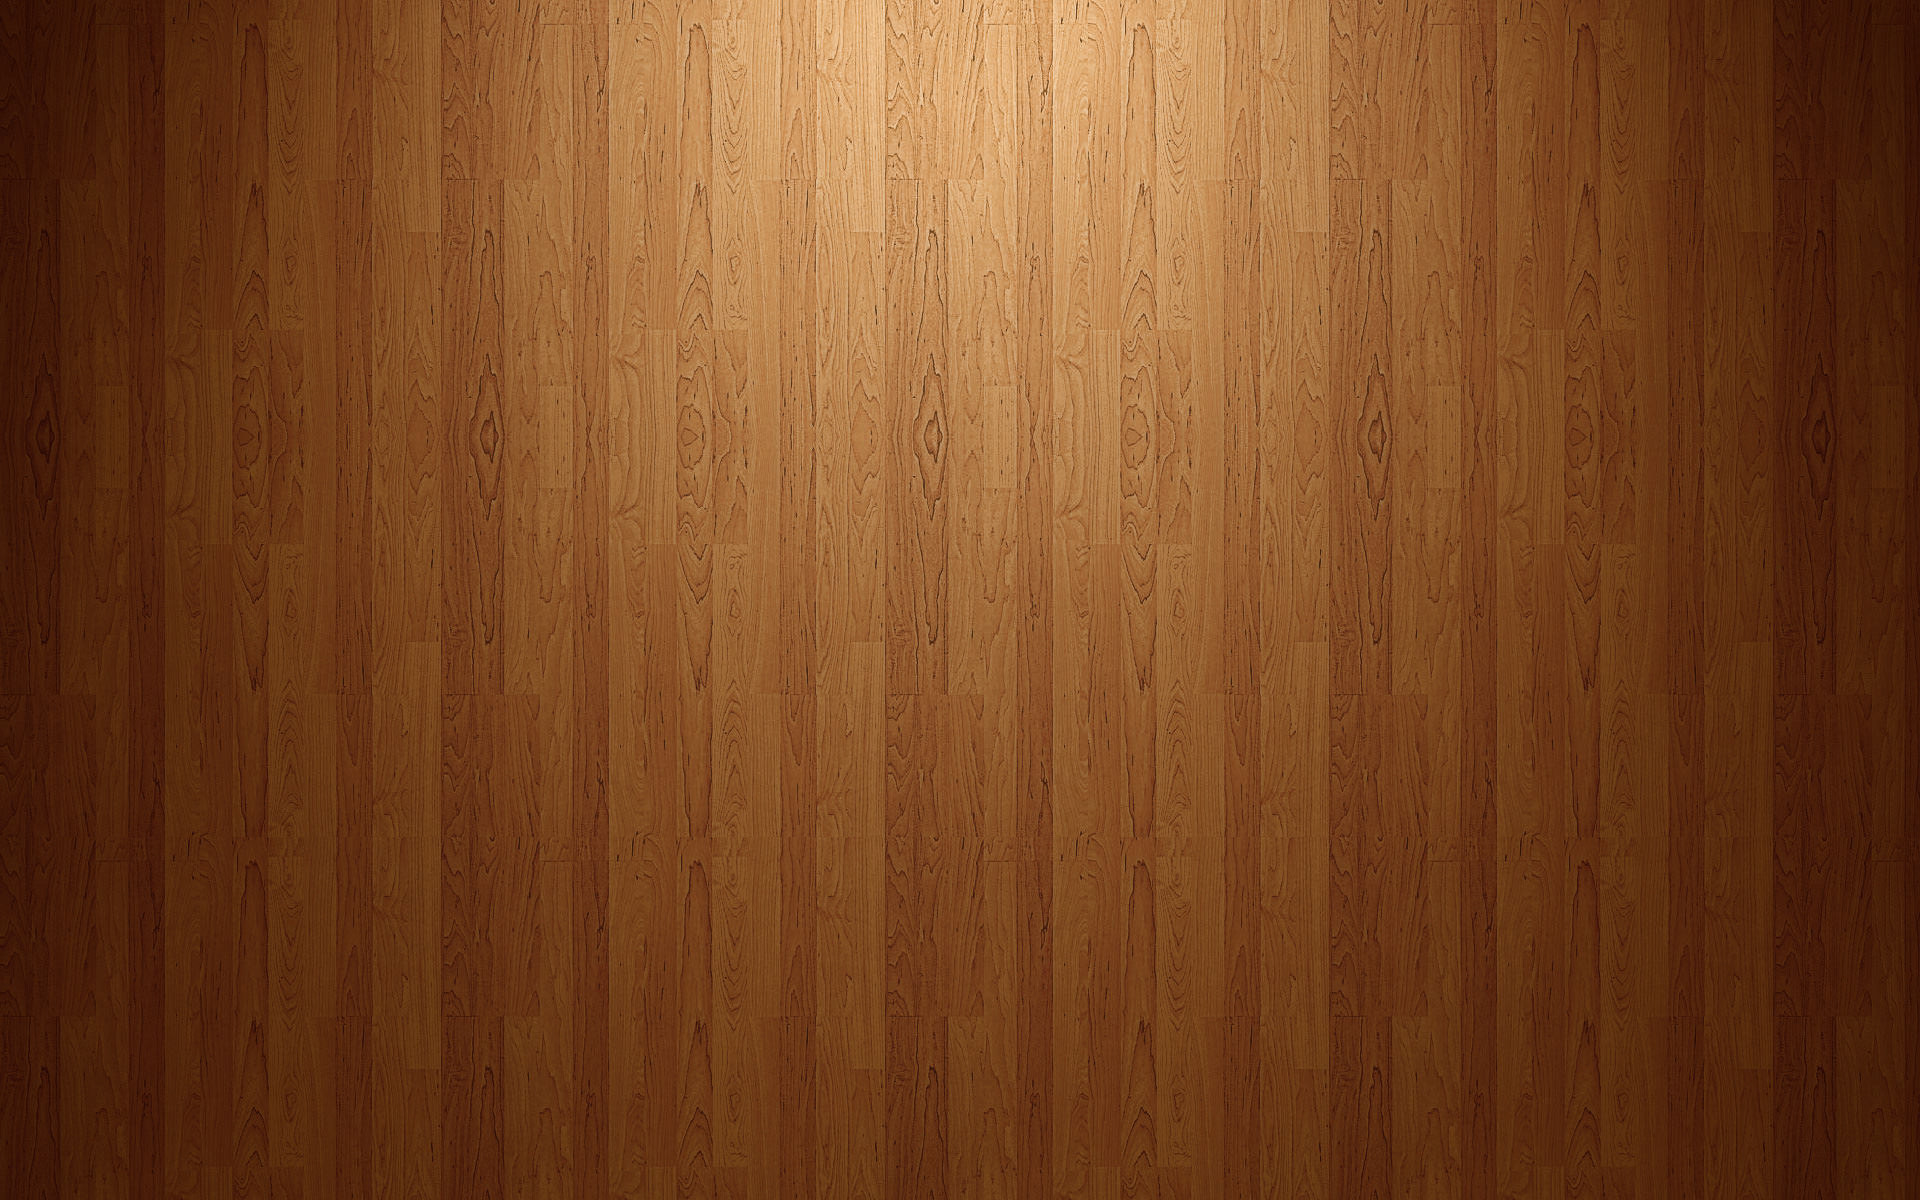 30 hd wood backgrounds wallpapers freecreatives for Timber flooring